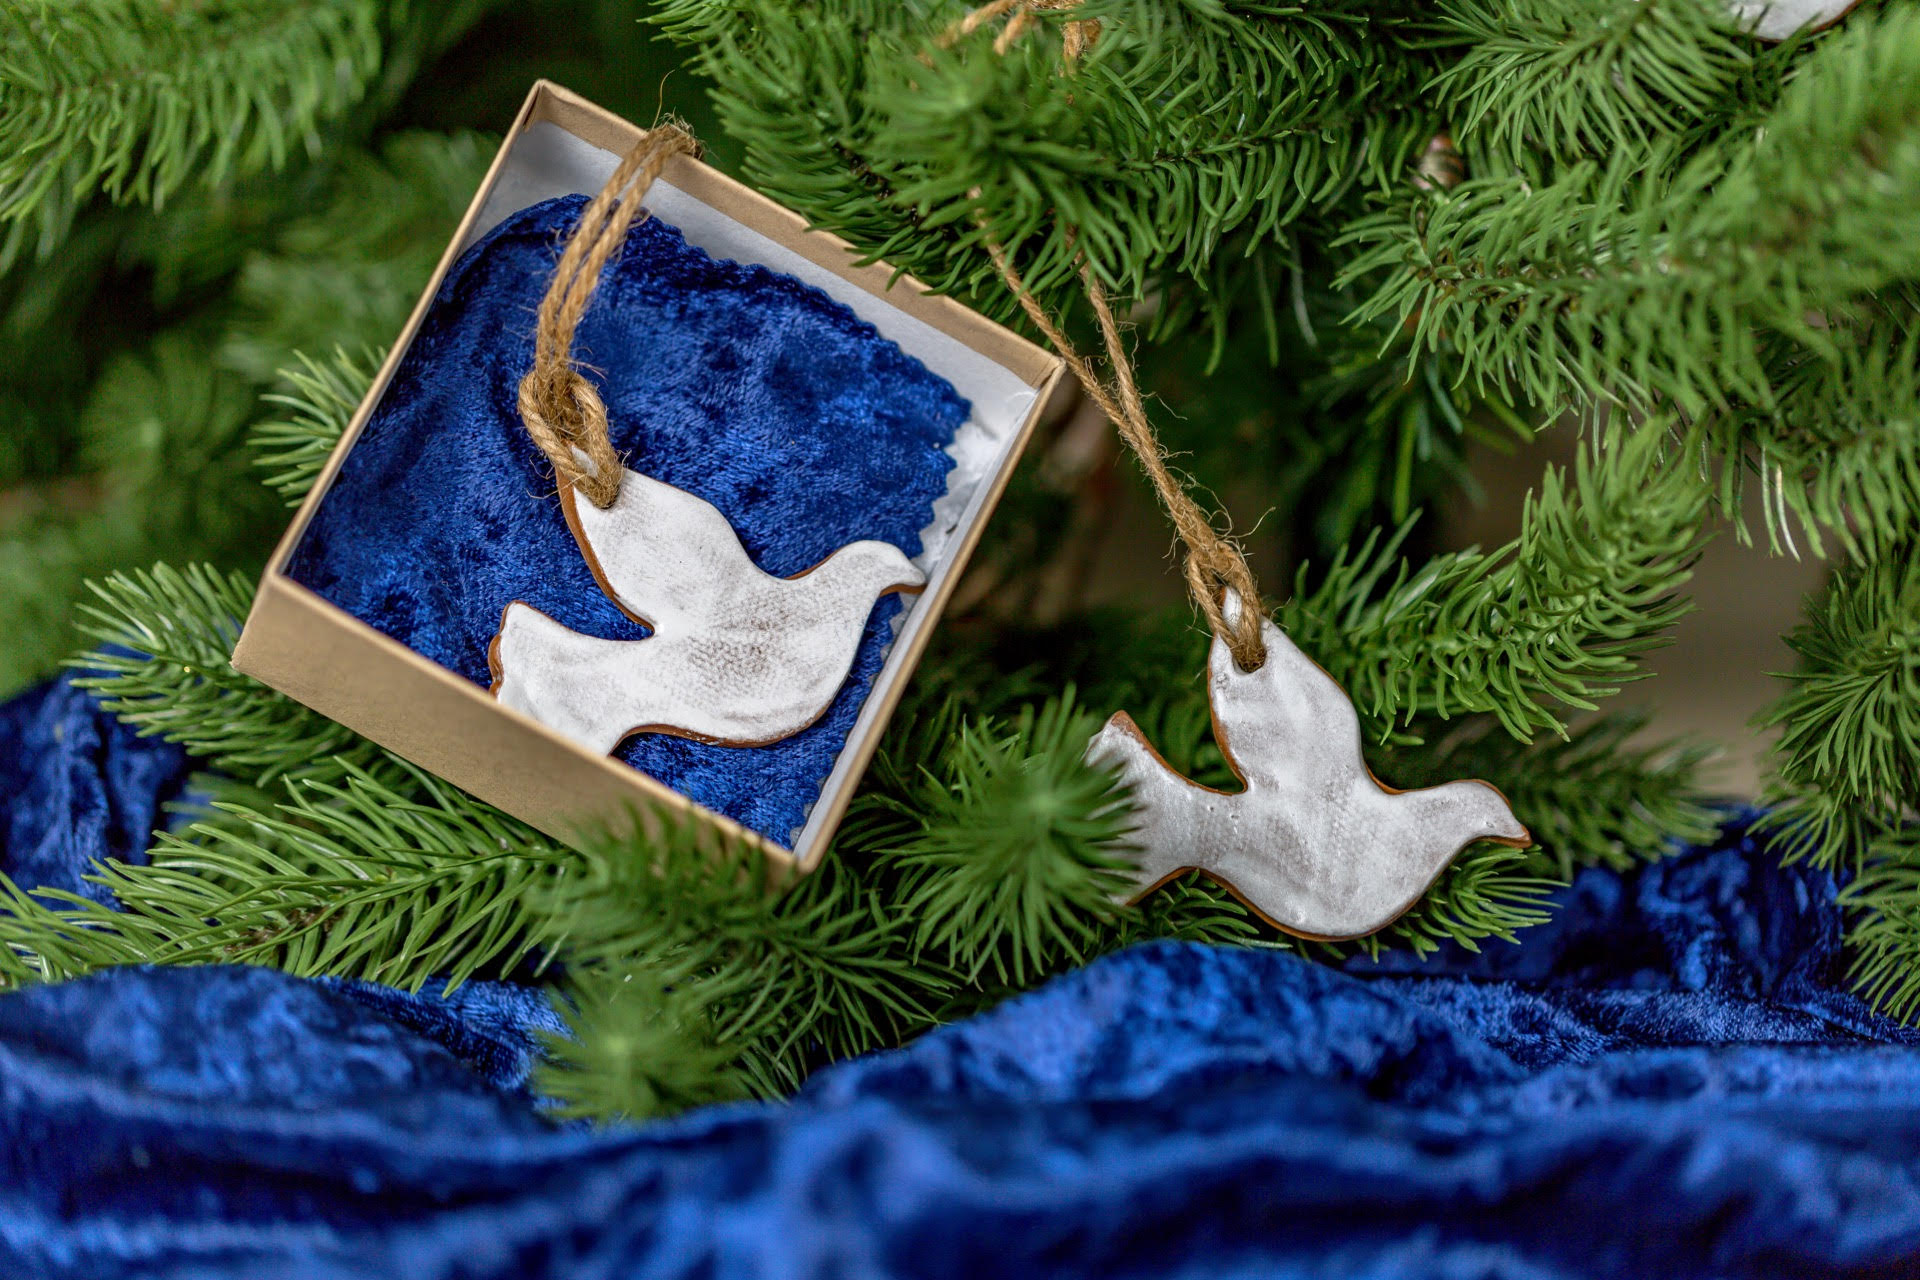 HRoMChristmasCollectionornament